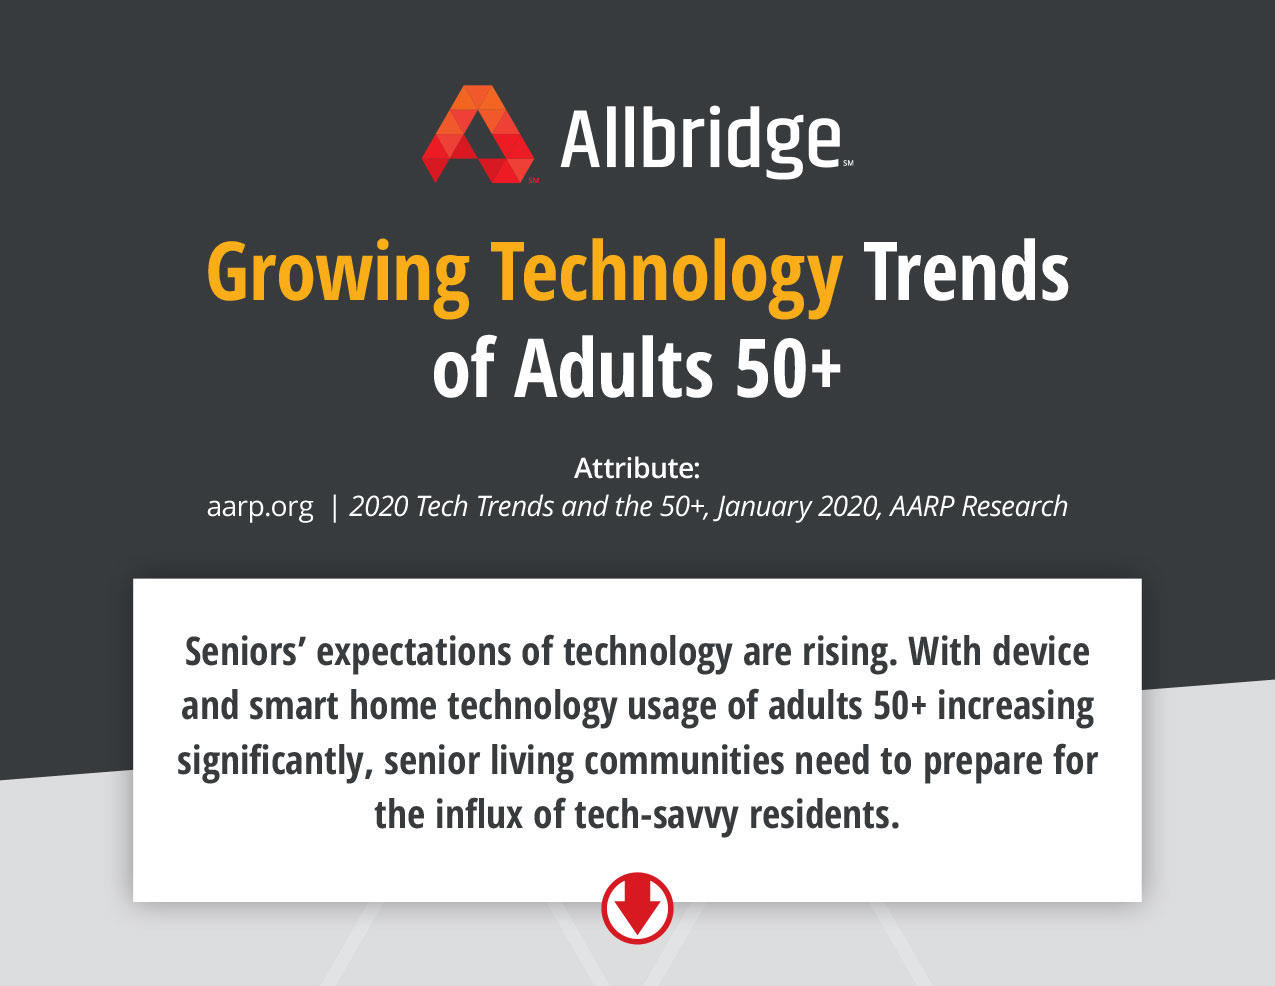 Growing Technology Trends of Adults 50+